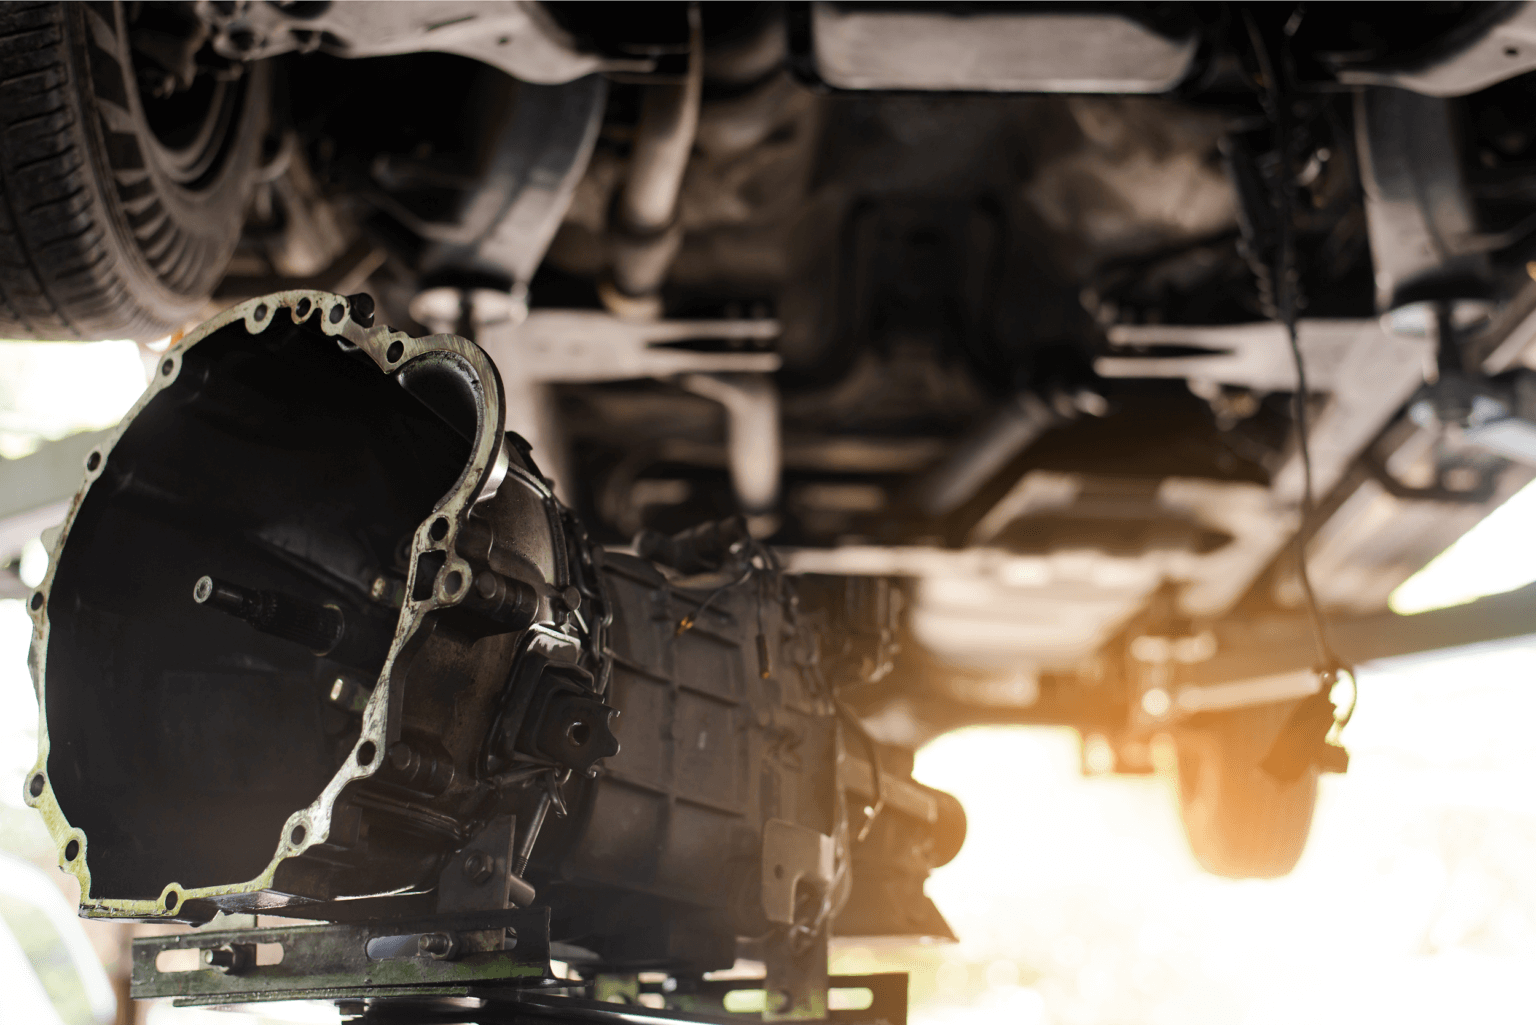 New Remanufacturing Processes Allow for OEM Quality